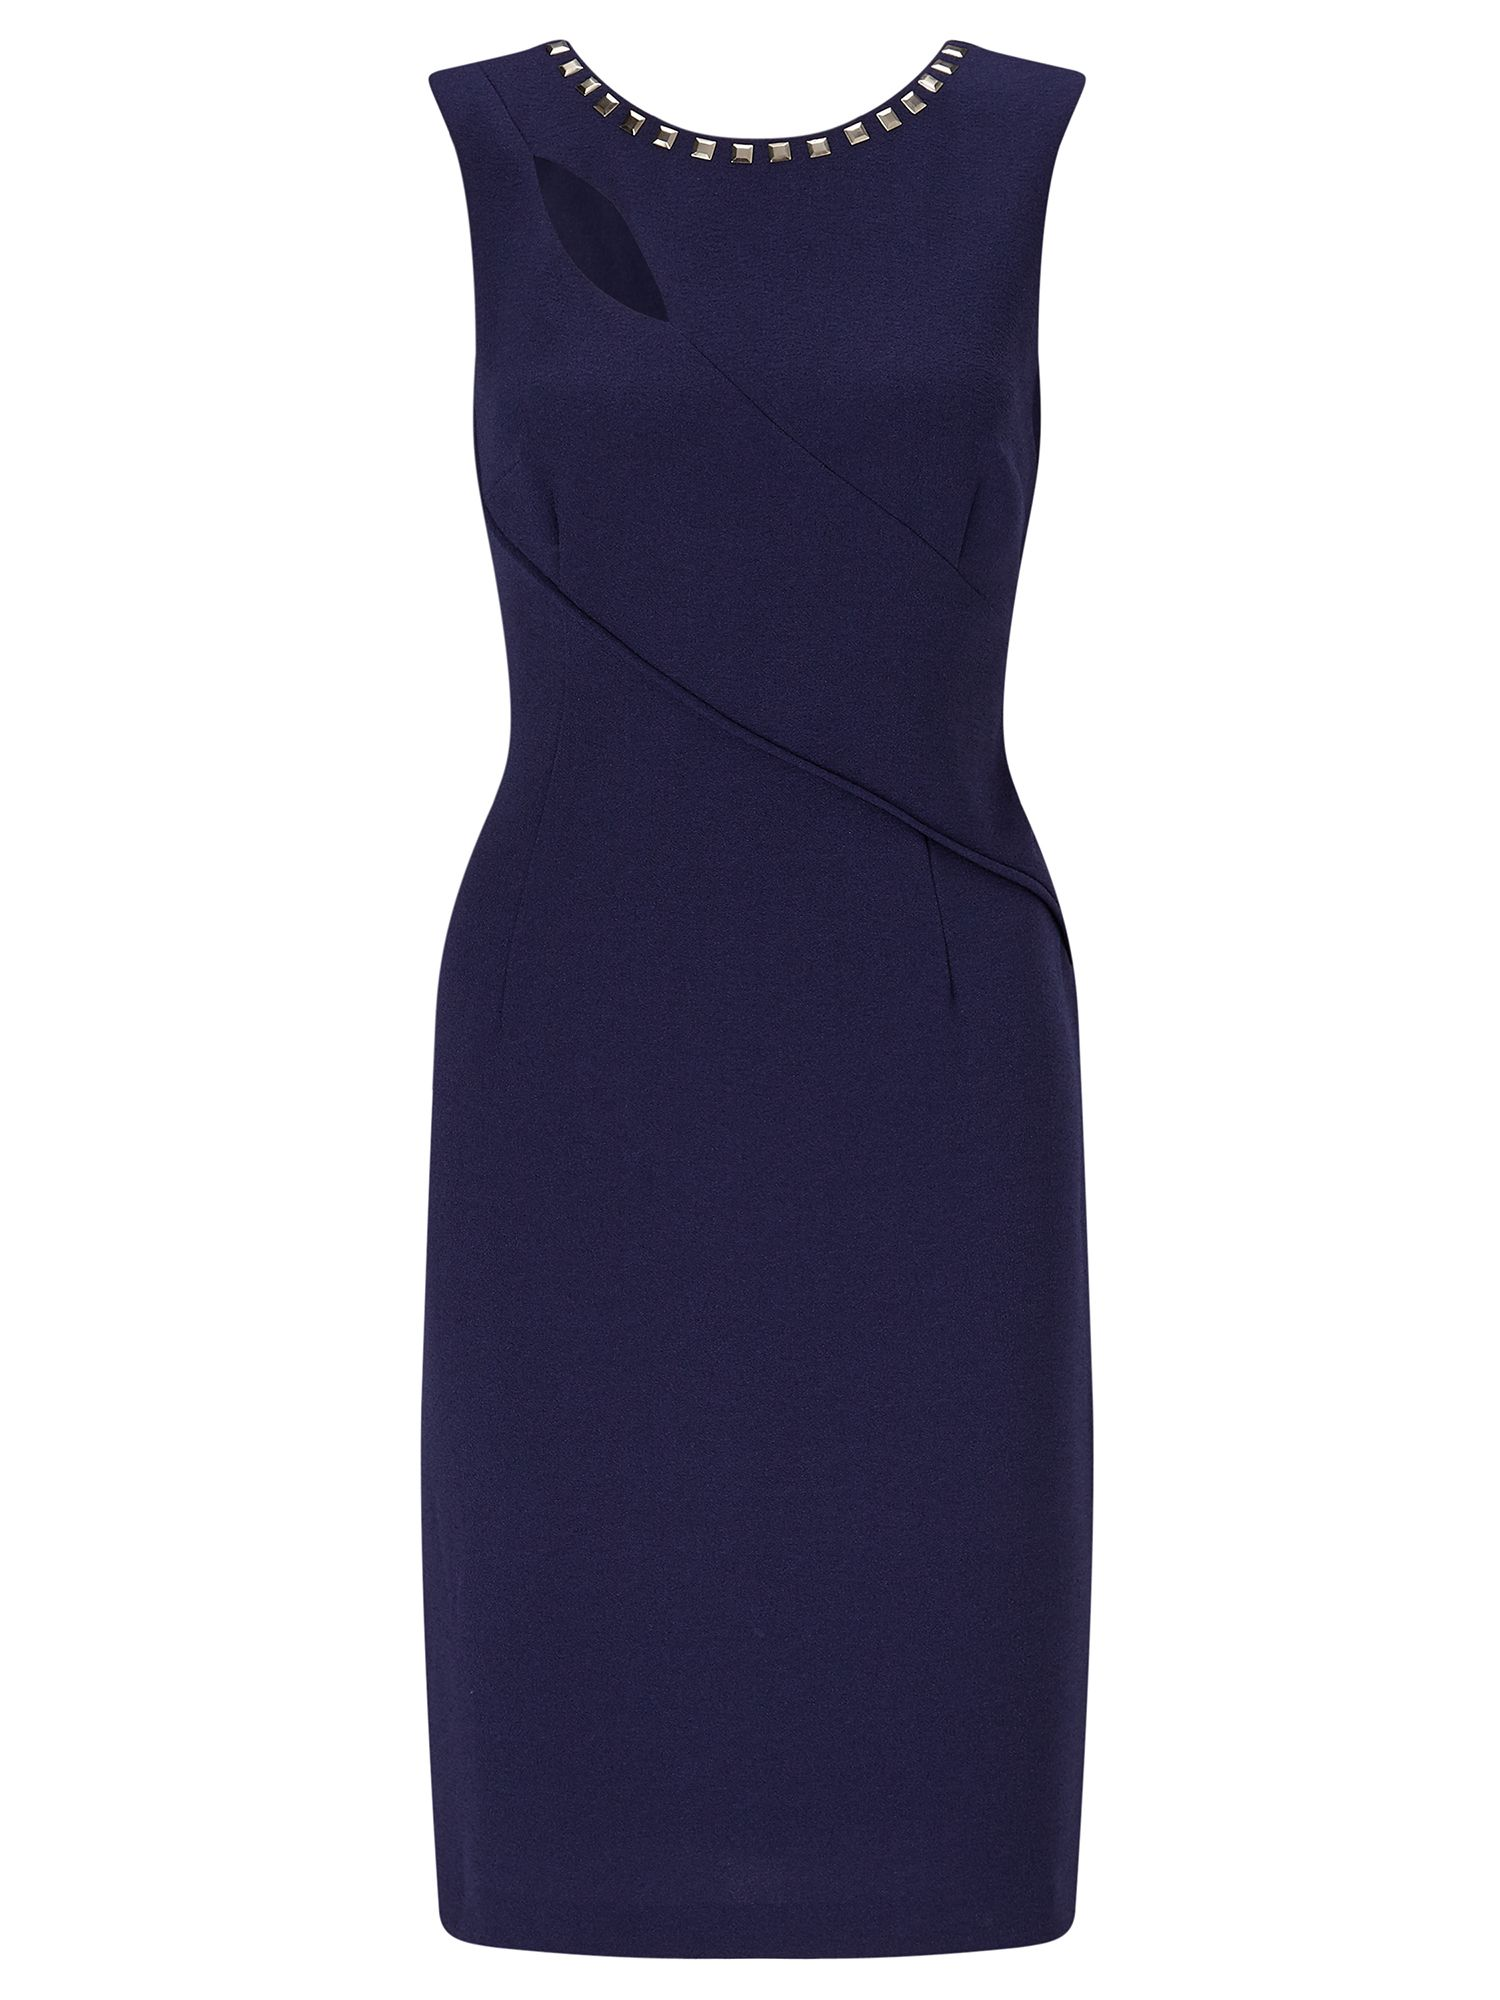 Adrianna Papell Cut out shift dress, Blue